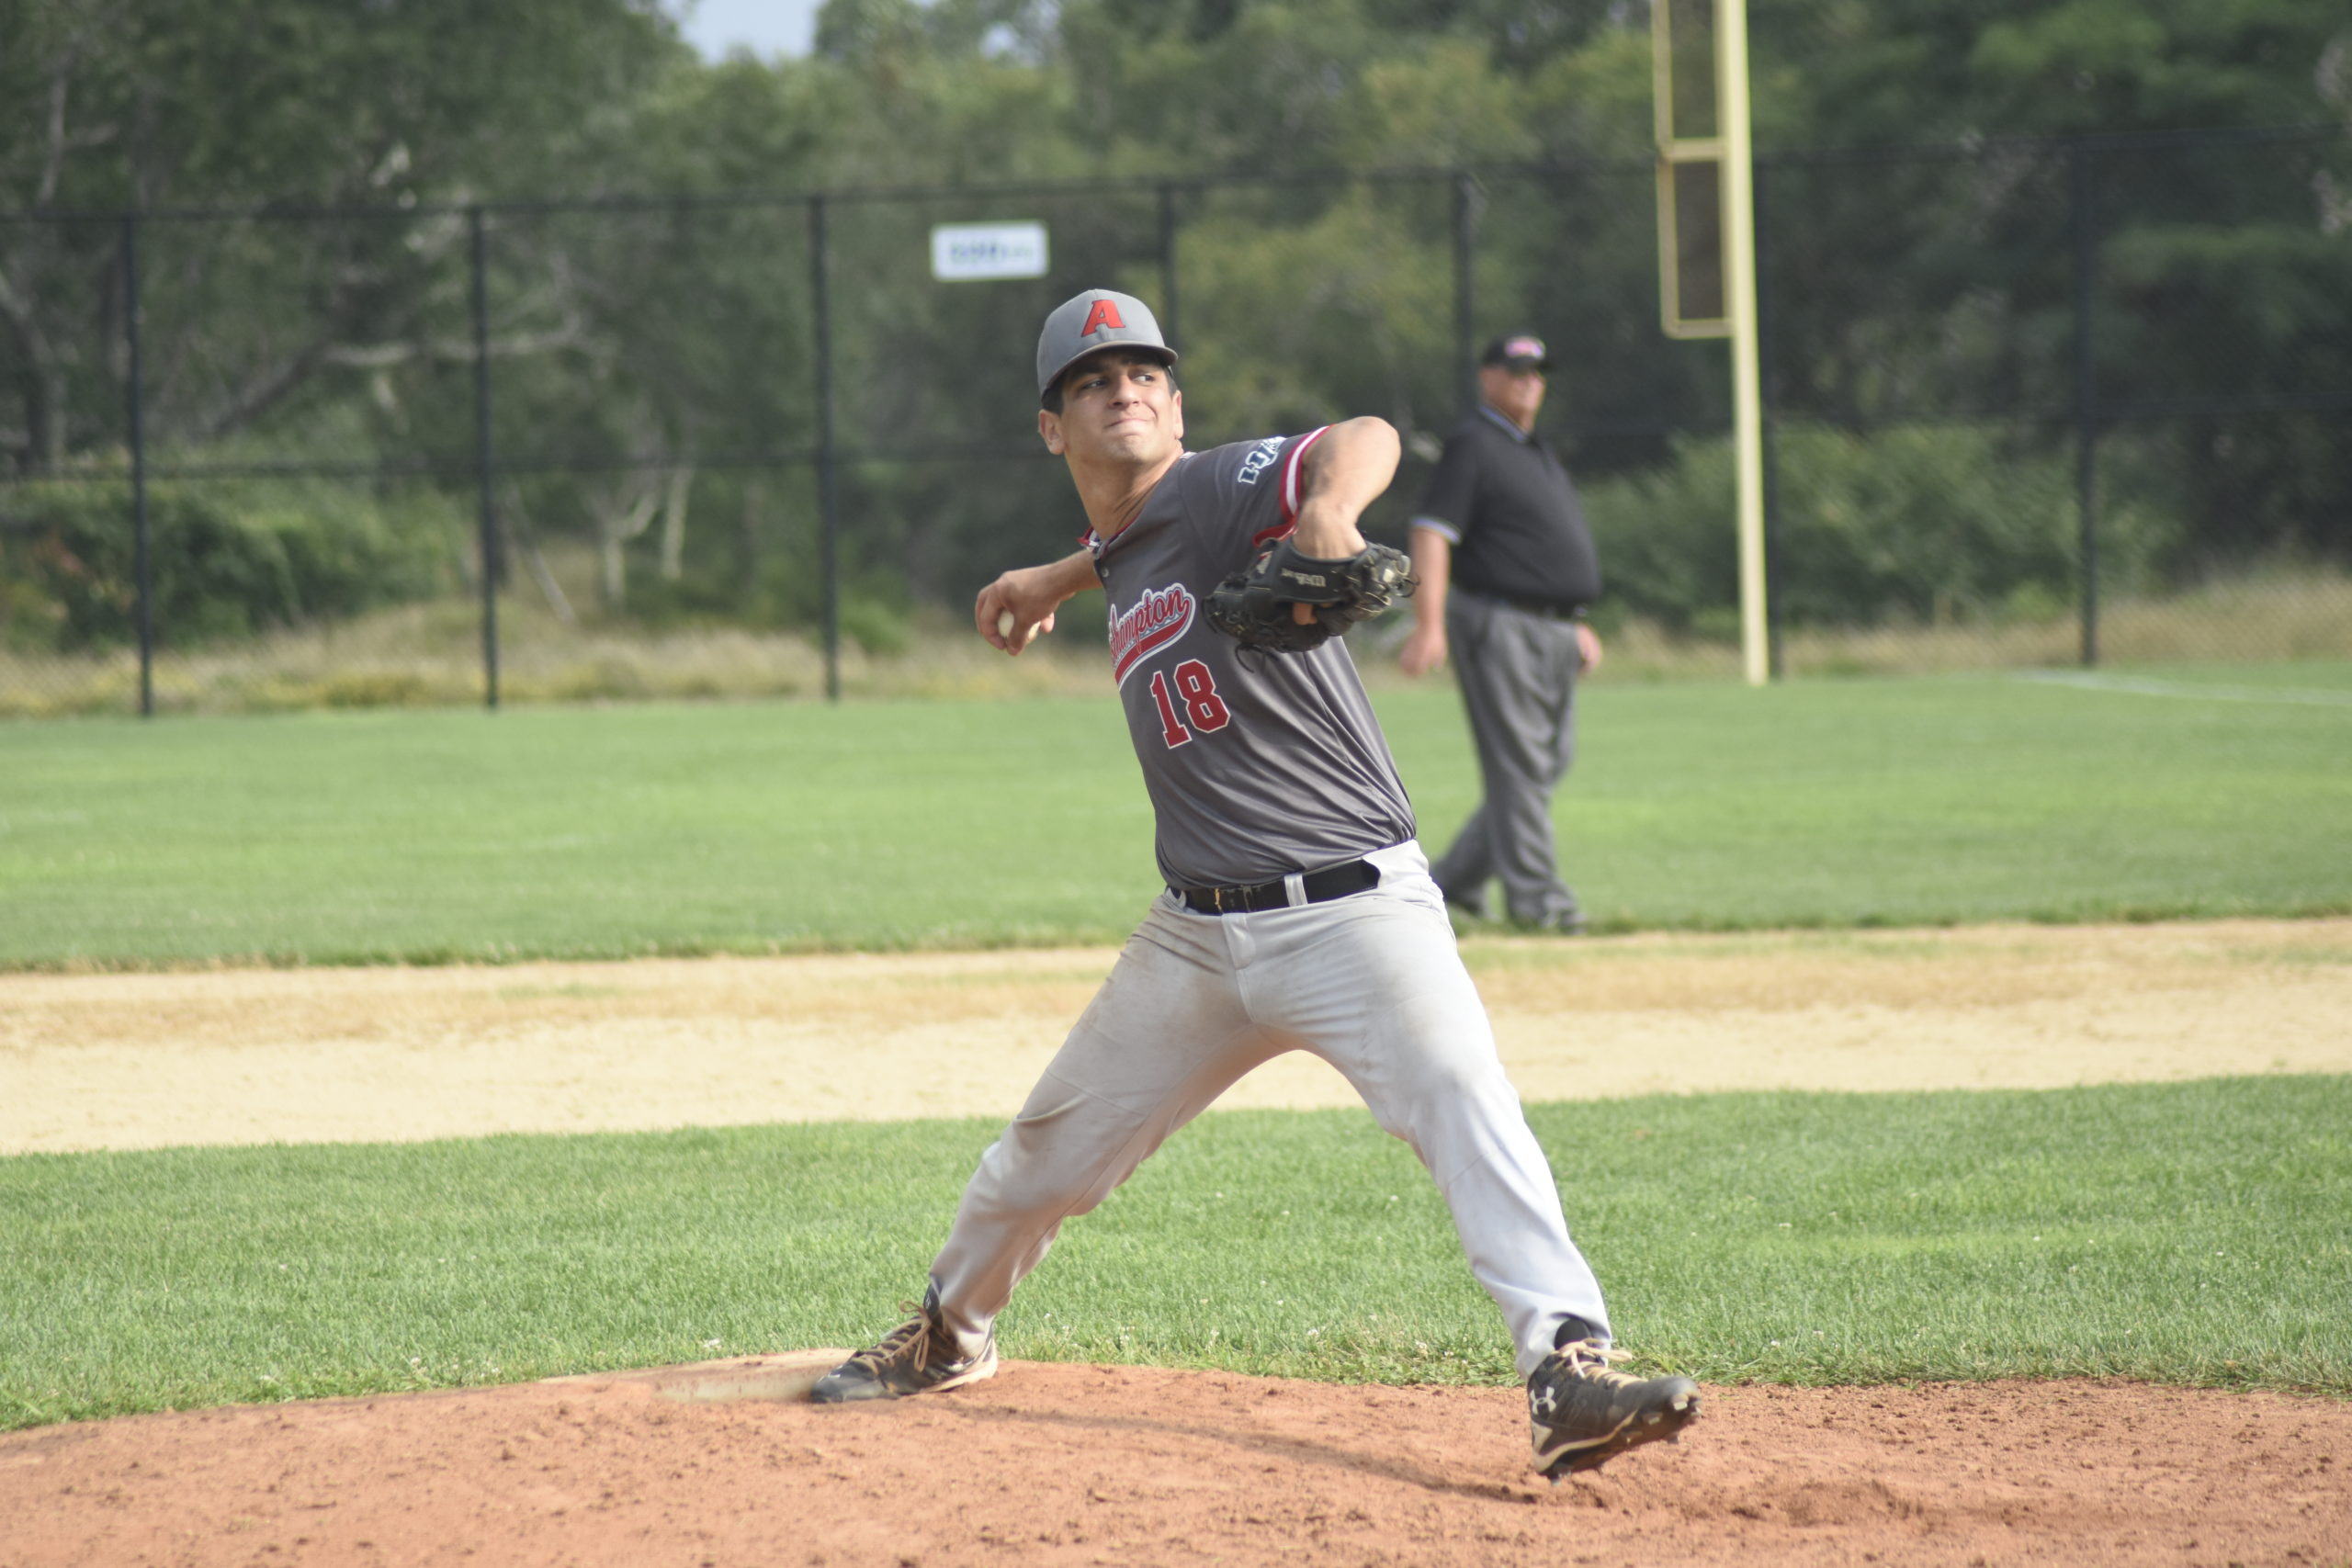 Justin Rosner (Binghamton) fired eight strong innings on Sunday with 10 strikeouts but took the tough-luck loss.